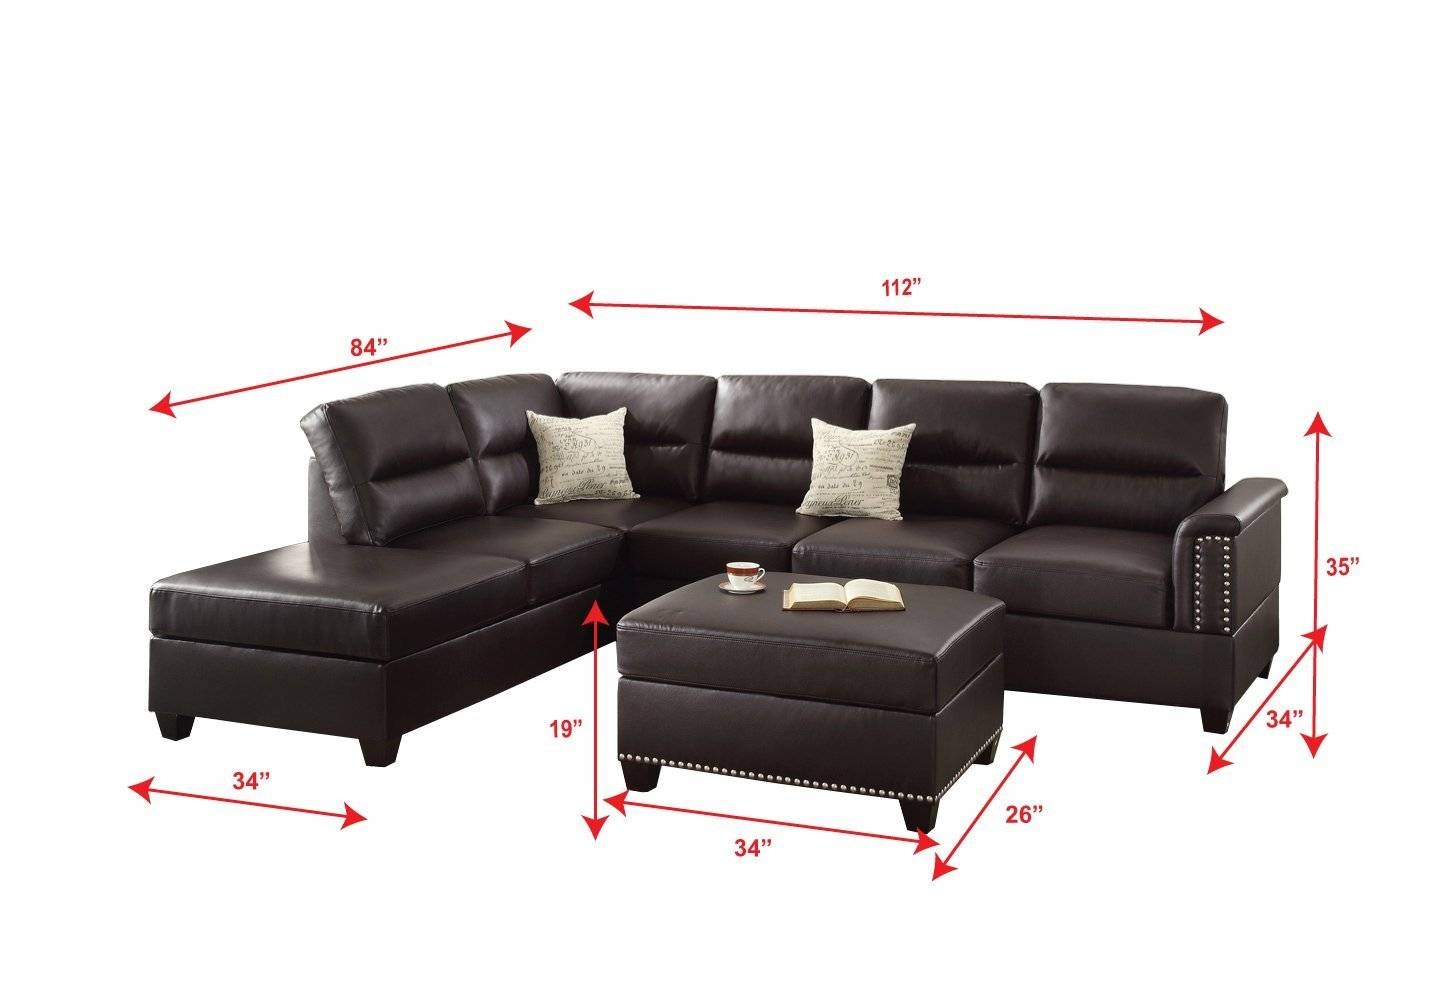 30 ideas of contemporary black leather sectional sofa left side chaise. Black Bedroom Furniture Sets. Home Design Ideas